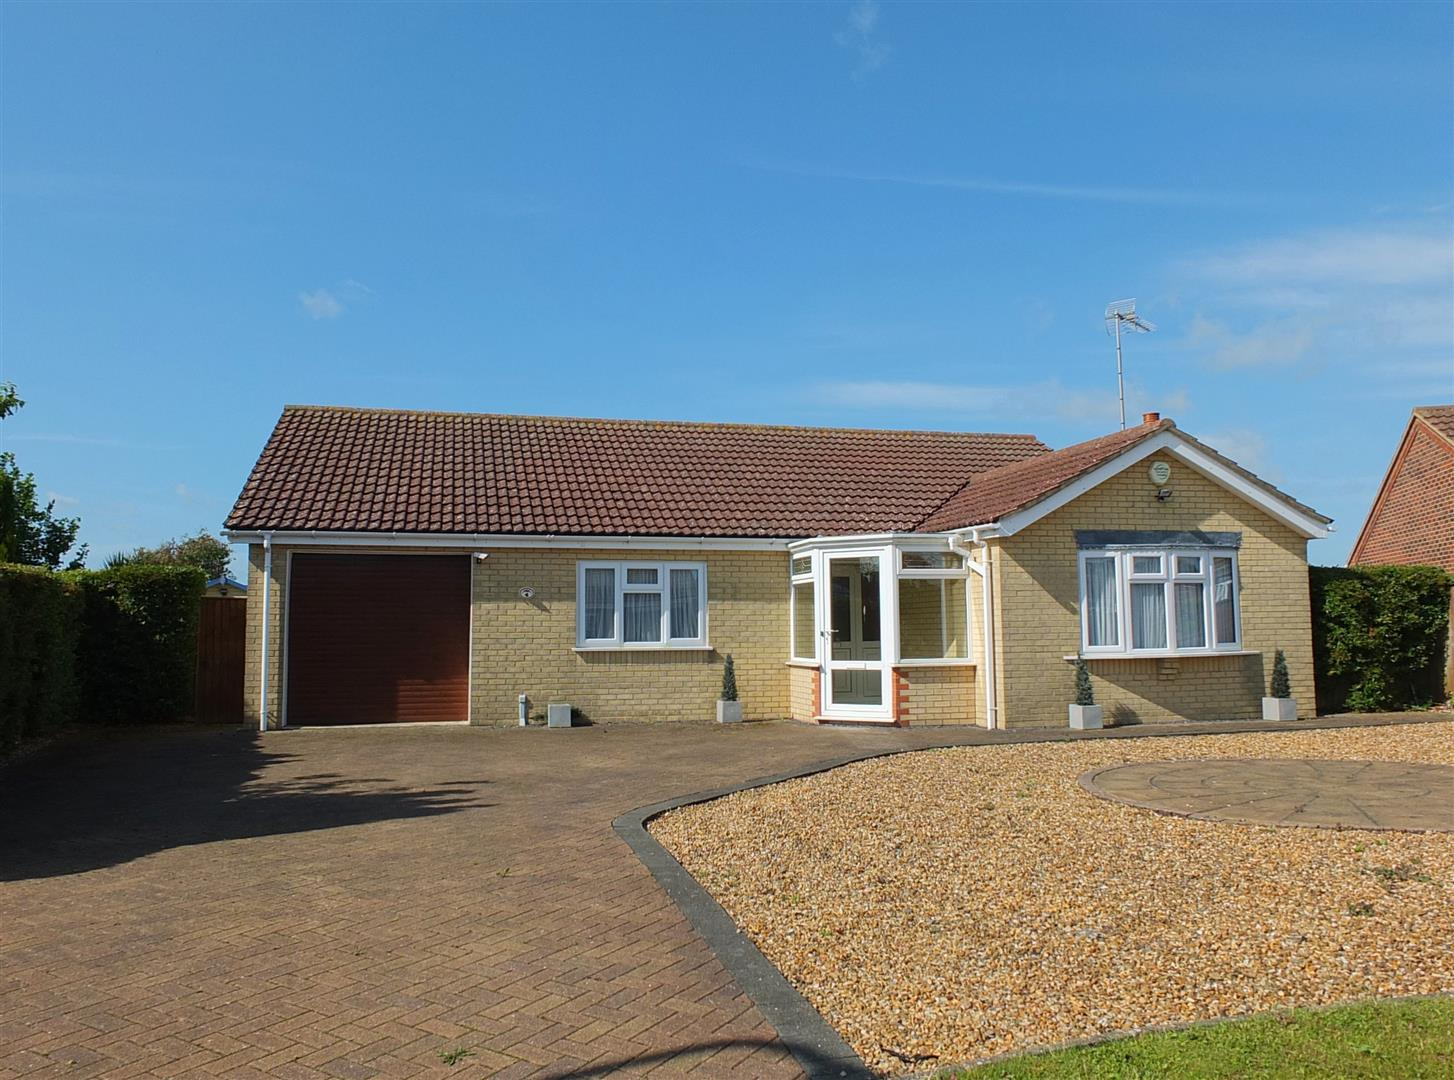 3 bed detached bungalow for sale in Skelton Drive, Long Sutton Spalding - Property Image 1